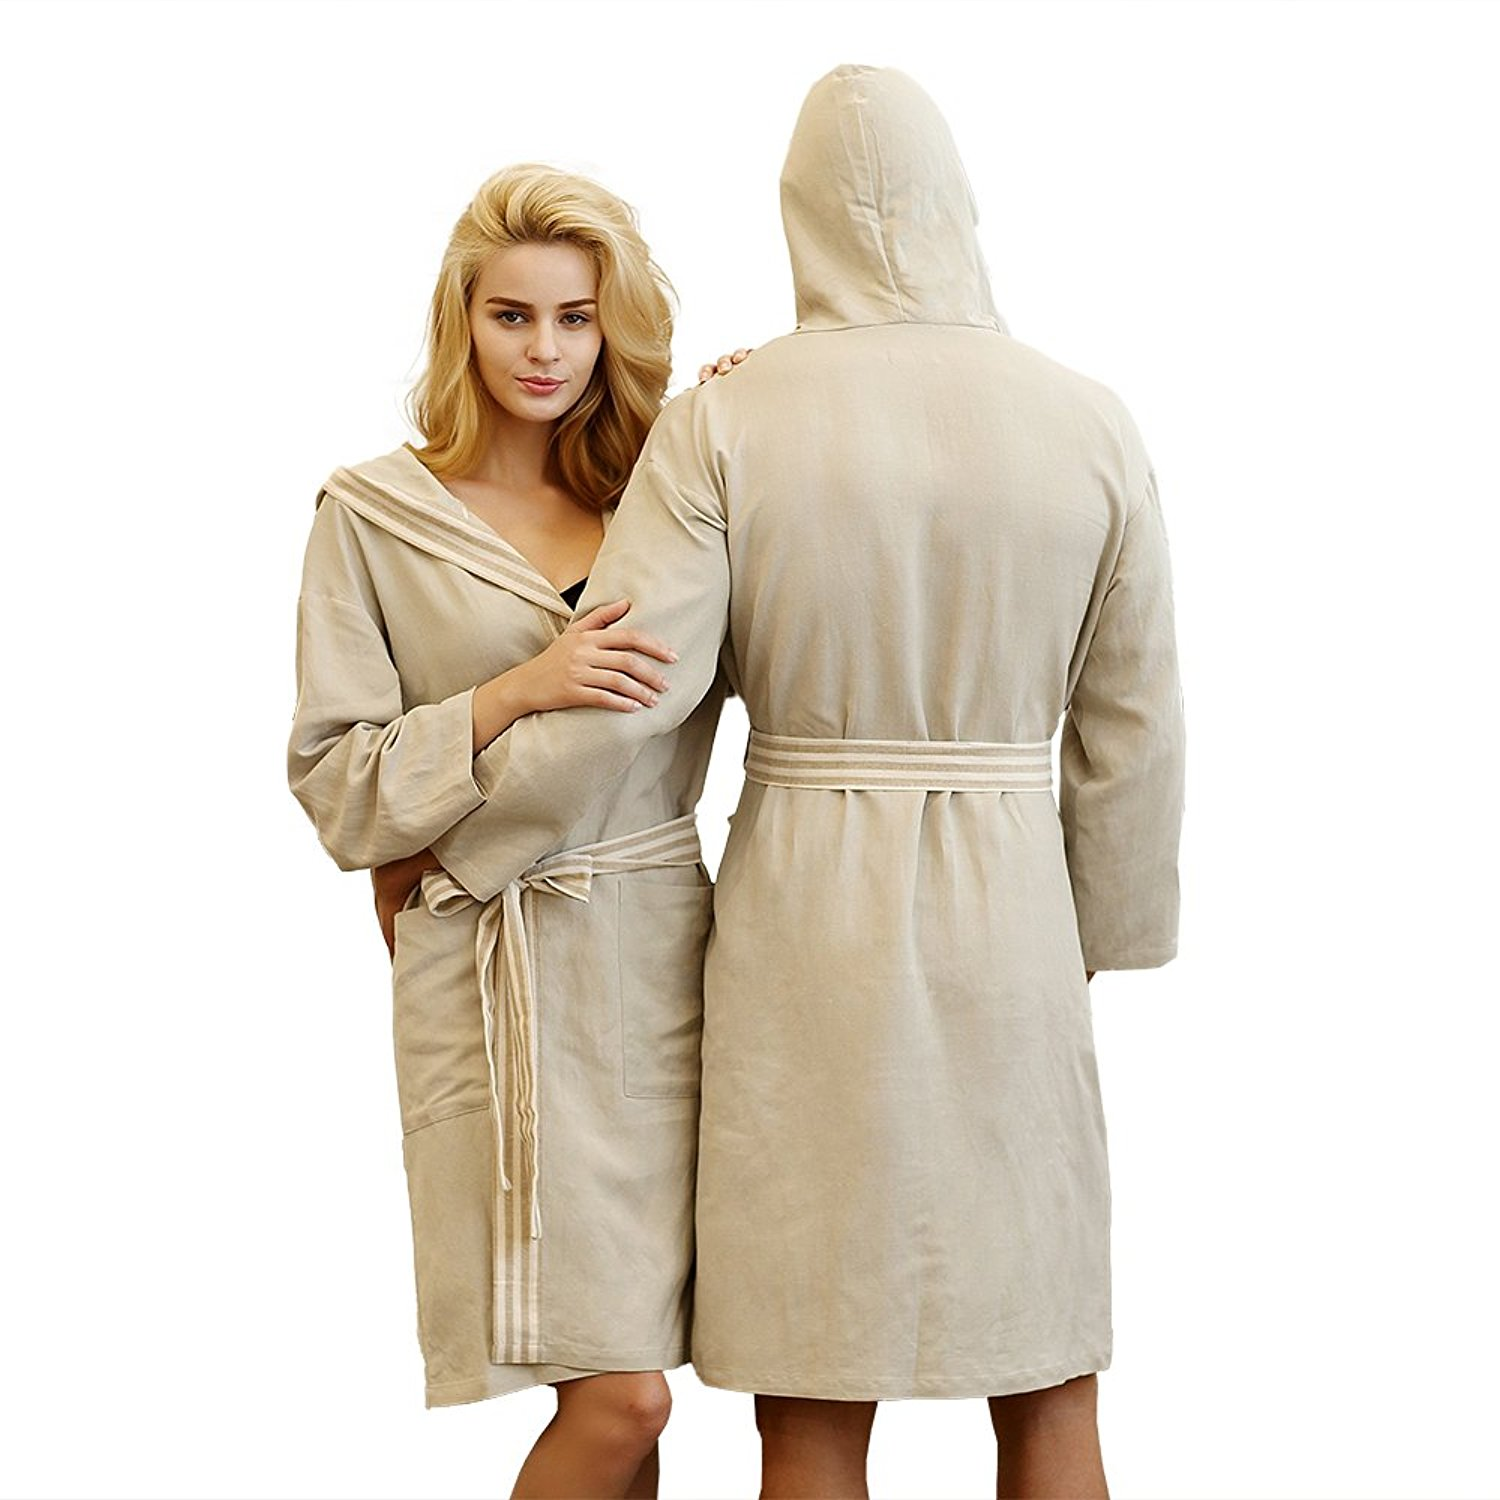 387f1cb84e Get Quotations · 7 VEILS Men and Women Couple Cotton and Lined with Hooded  Spa Robes